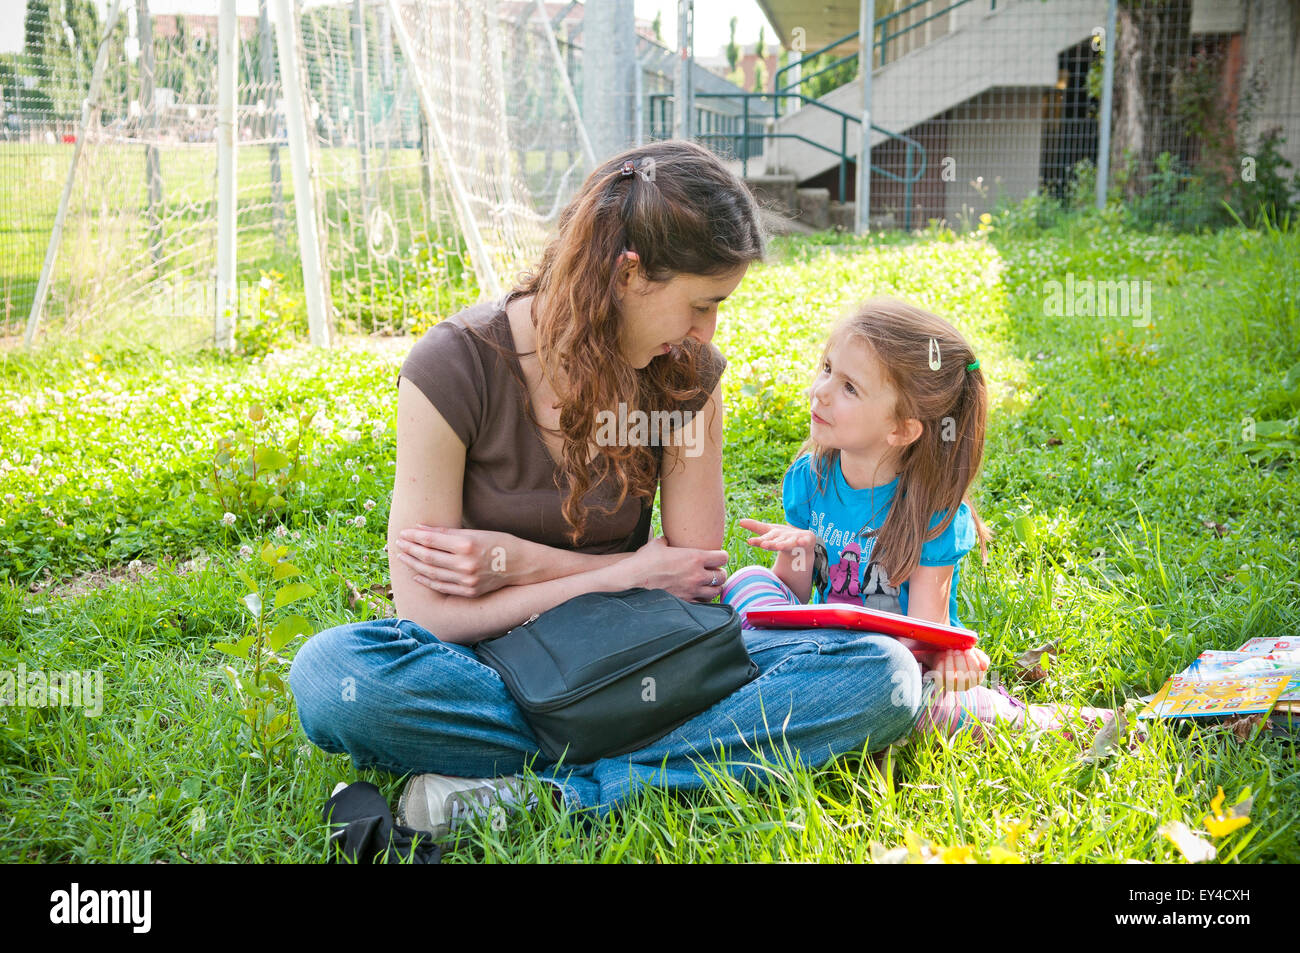 Woman and Child Playing While Sitting in Grass - Stock Image